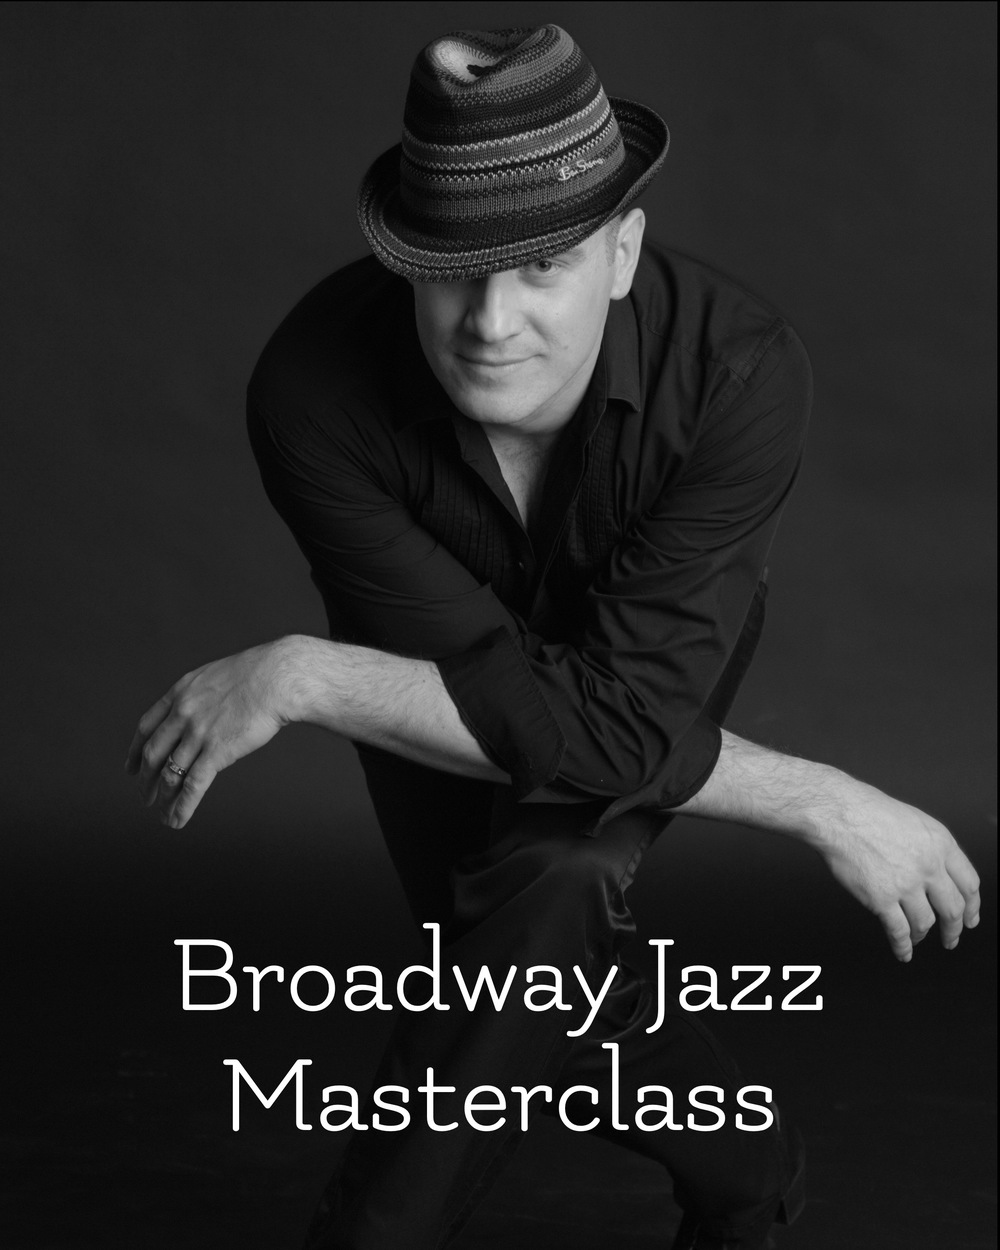 David has a vast knowledge of style and form related to classic Broadway jazz. He has studied with Randy Skinner, Alan Onickel, Joe Tremaine and Luigi.